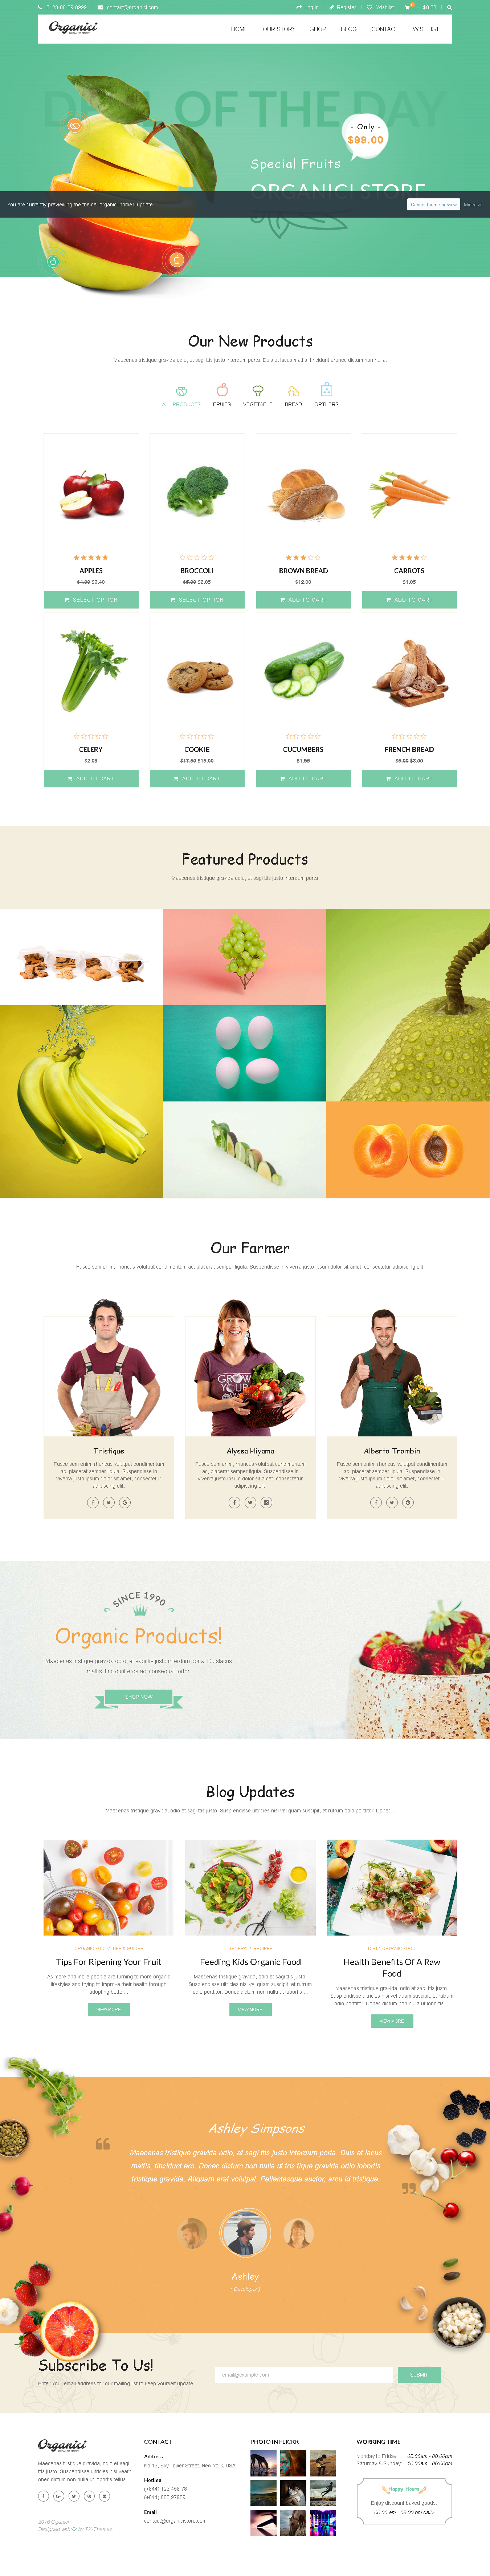 5 Best SHOPIFY Premium Themes Collection for Food Store 2017 - Organici - Creative Multi-Purpose Shopify Theme